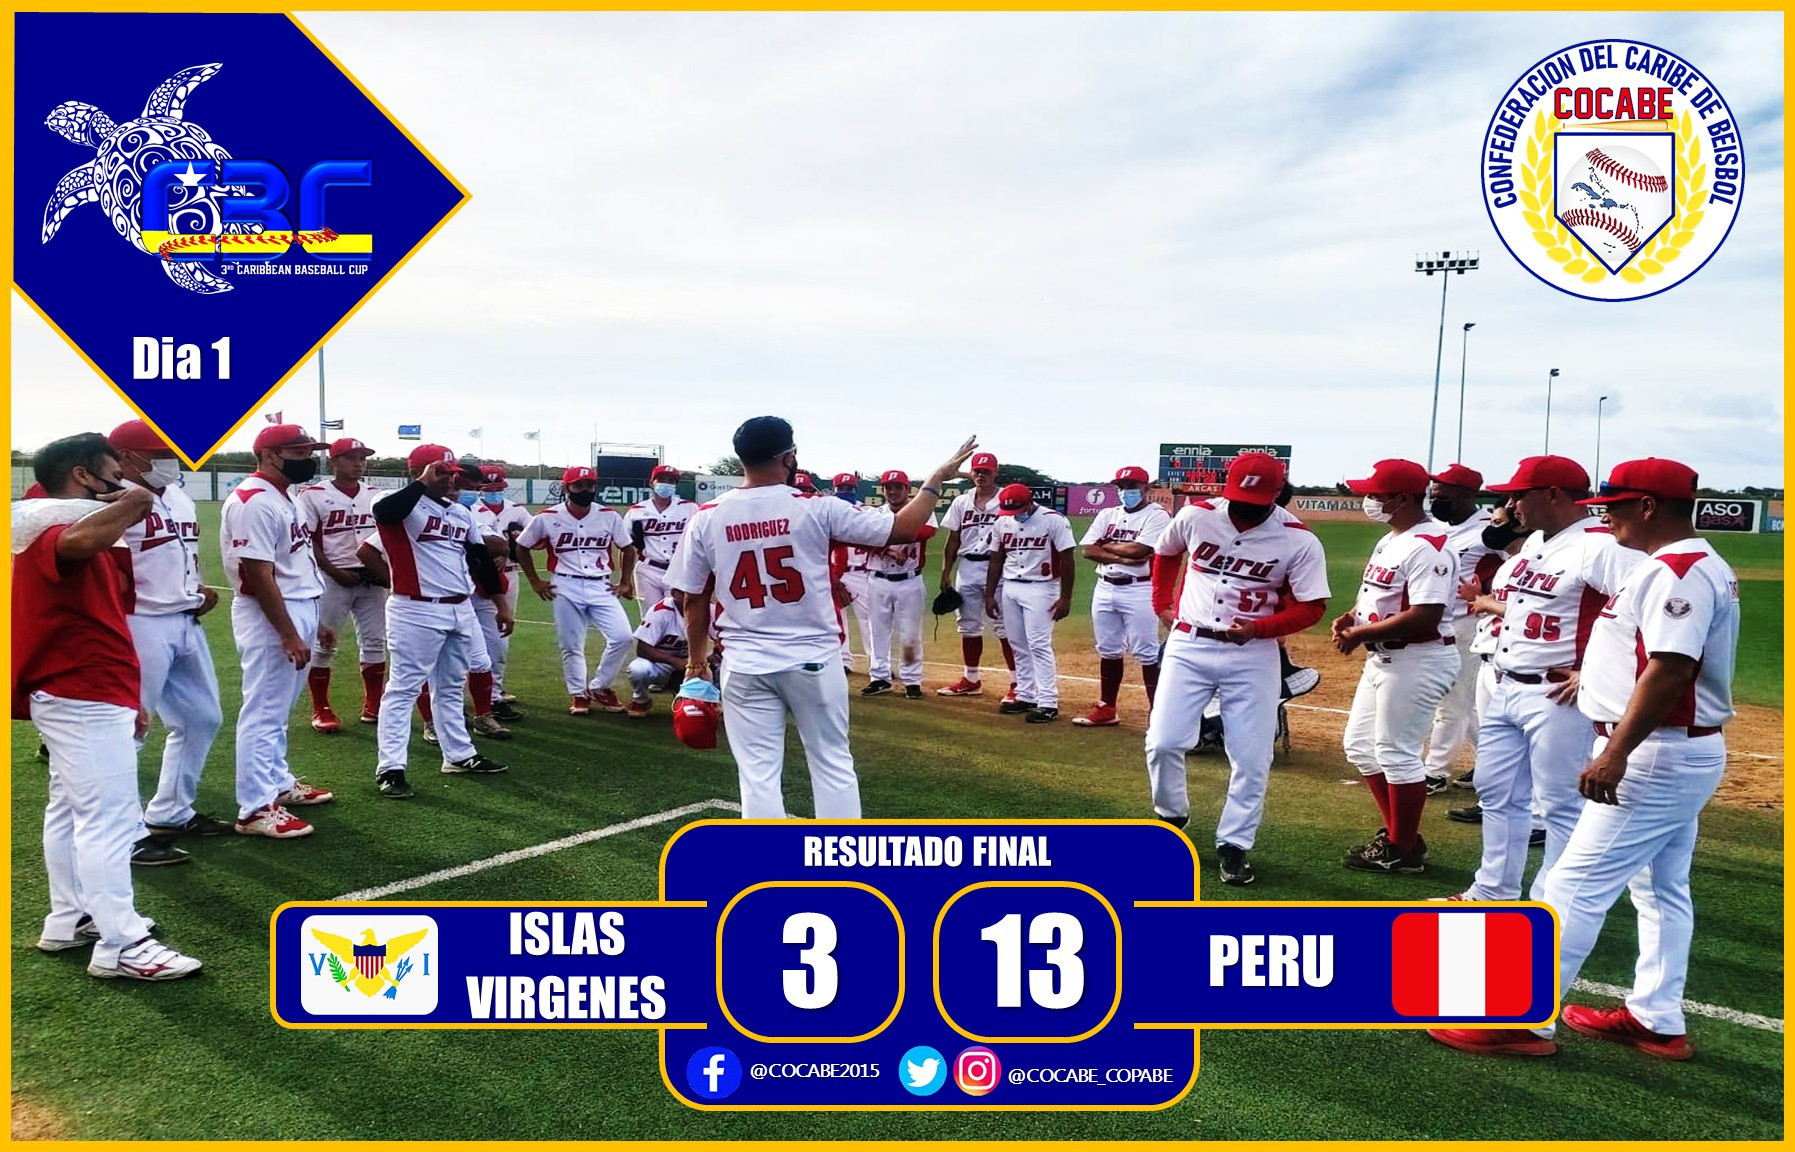 Peru claimed an opening round win over the US Virgin Islands at the Caribbean Baseball Cup in Curaçao ©COCABE